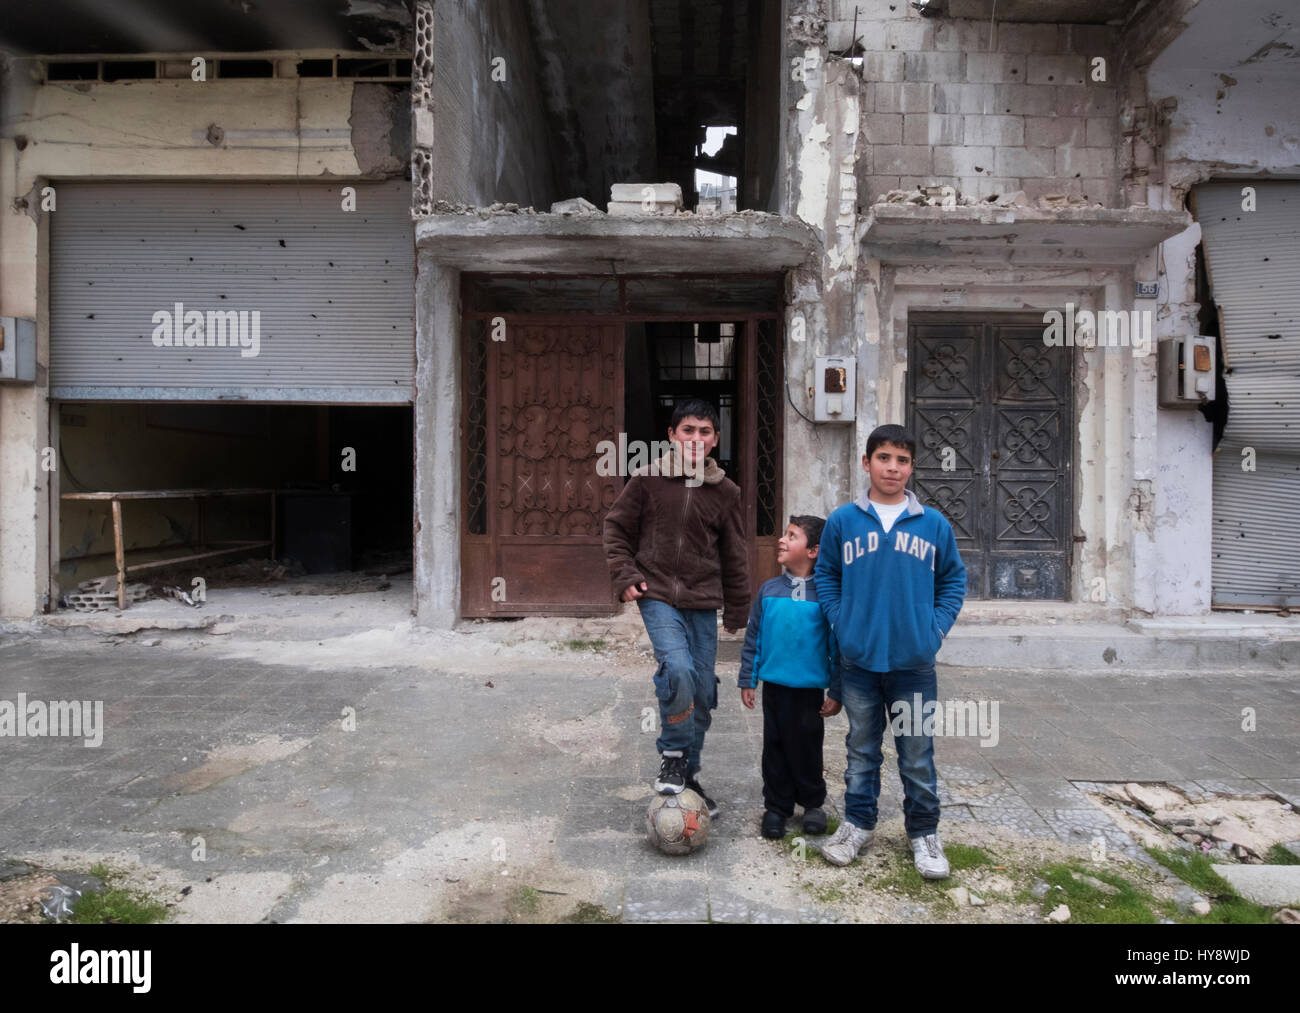 Children playing football in distressed district Baba Amr, Homs, Syria in early 2017 - Stock Image